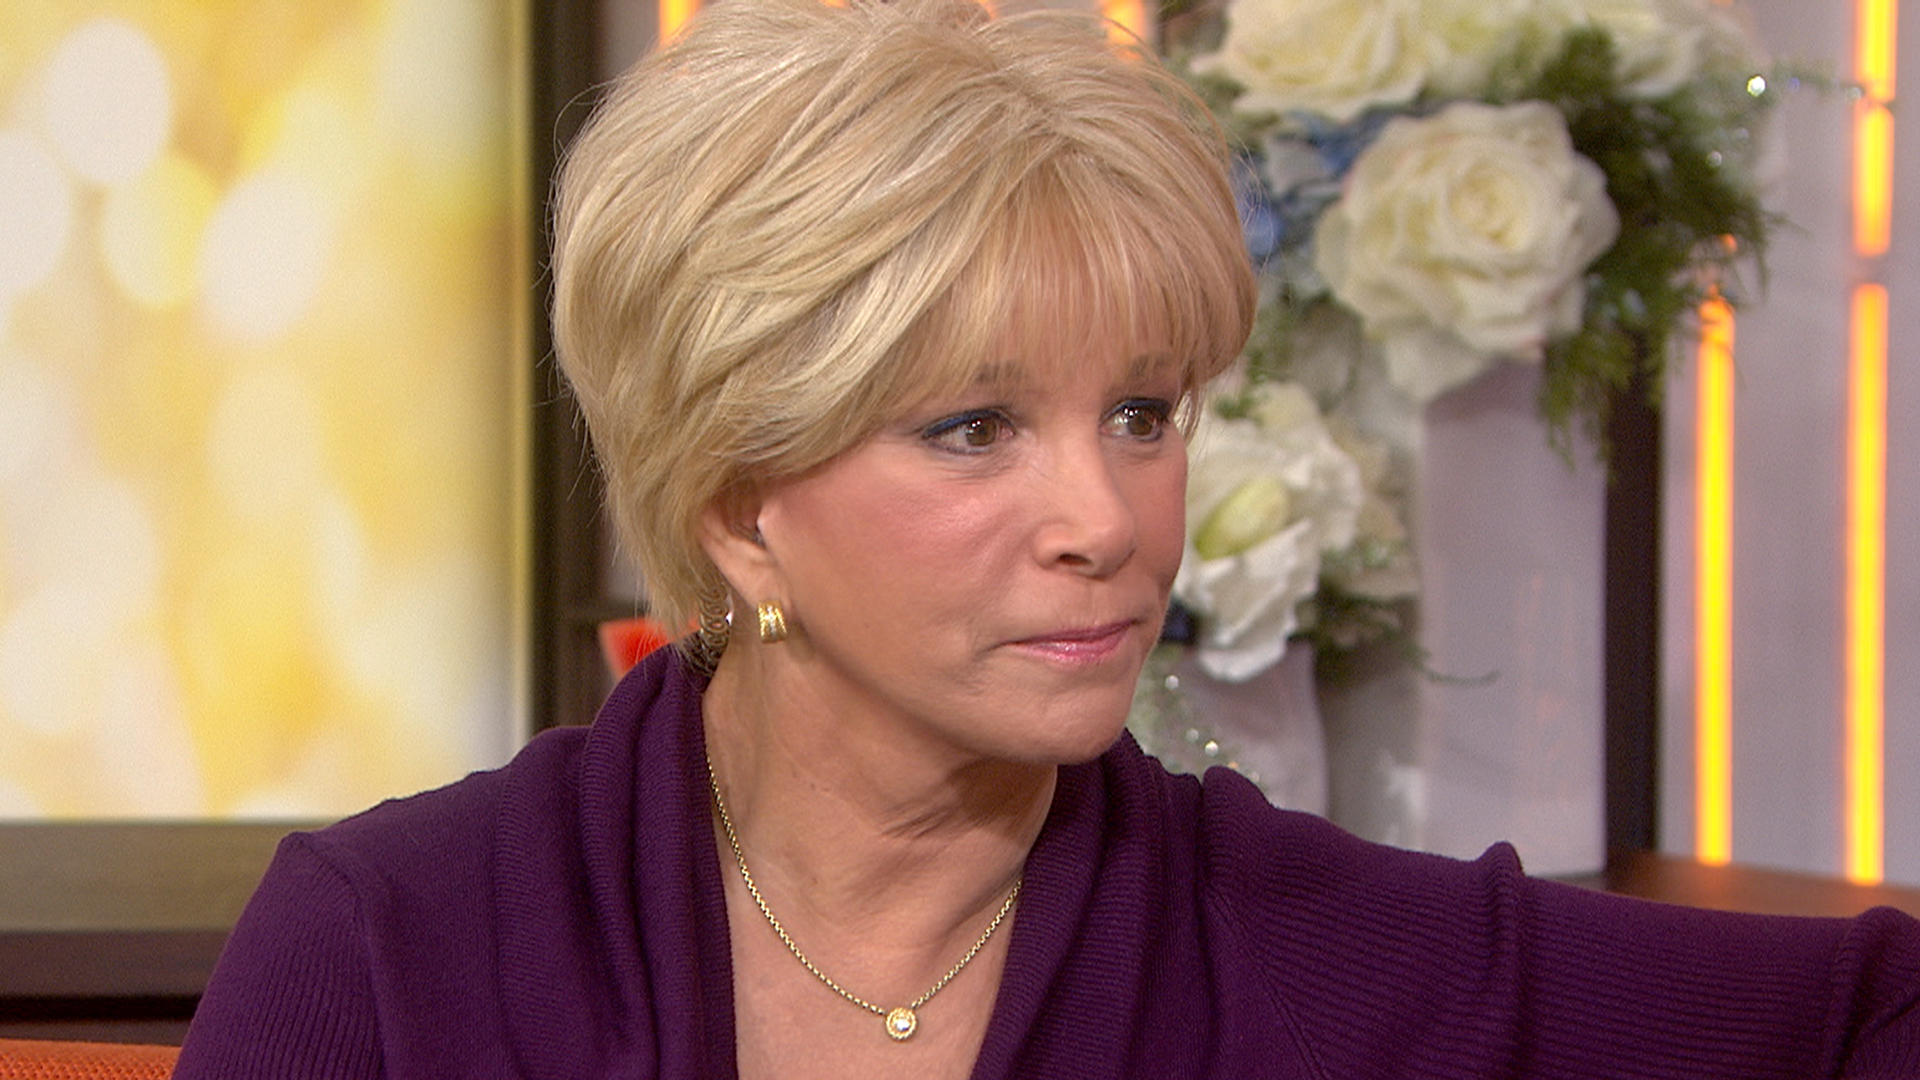 Joan Lunden's 7 tips for facing breast cancer - TODAY.com